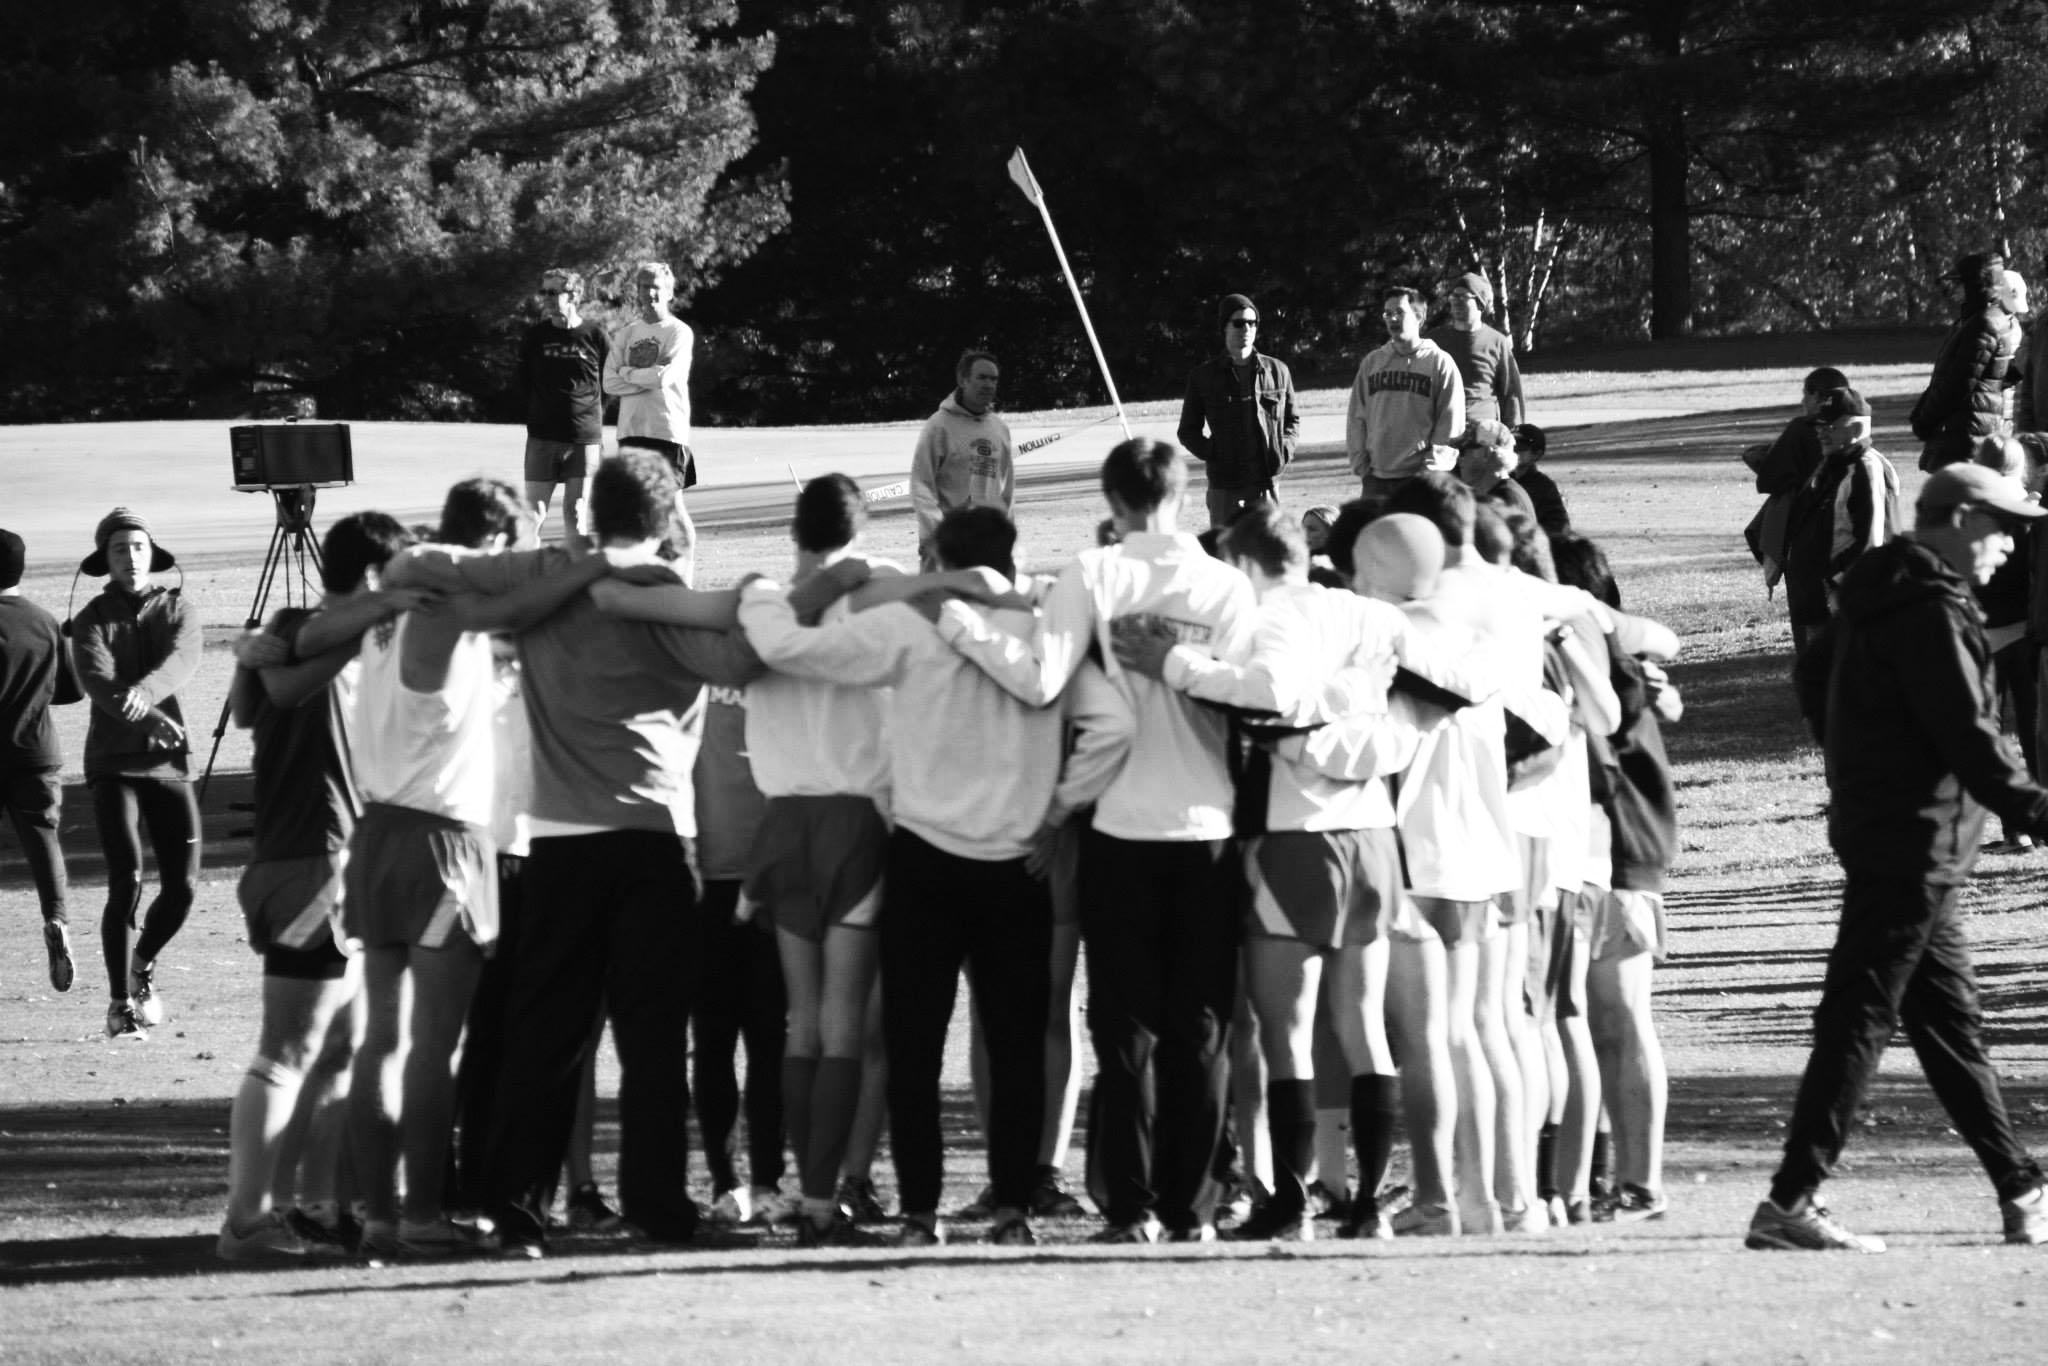 The Men's Cross Country team huddles before competing in the MIAC Championships at Como Park in Saint Paul. The team finished sixth out of 11 in the conference. Photo courtesy of Steve Gilfix.